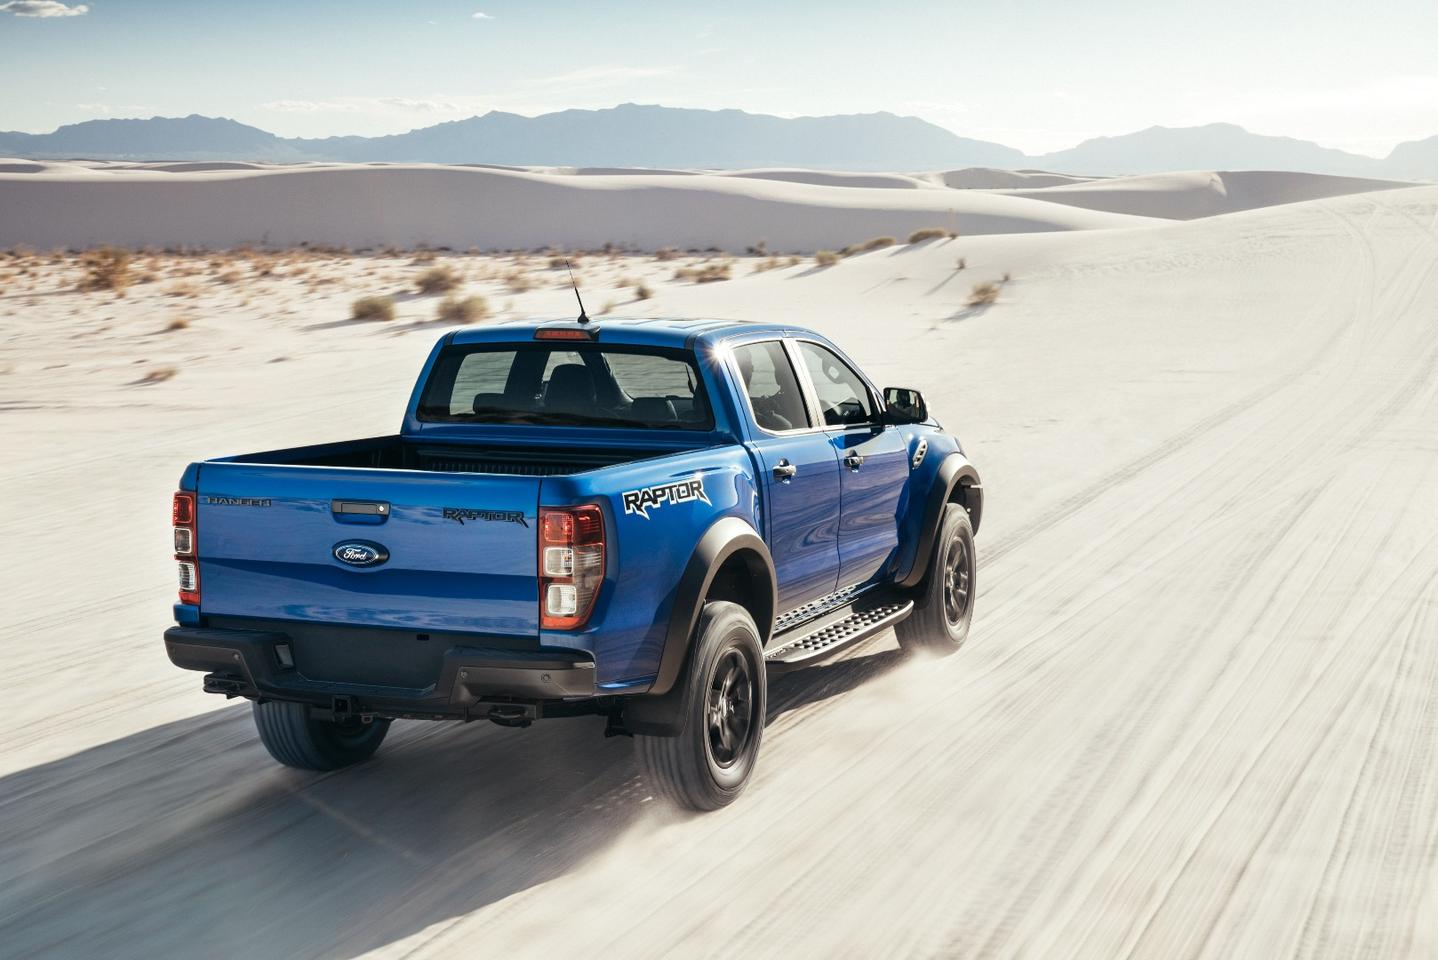 2018 Ford Ranger Raptor:a high-performance off-roader for the Asia Pacific market